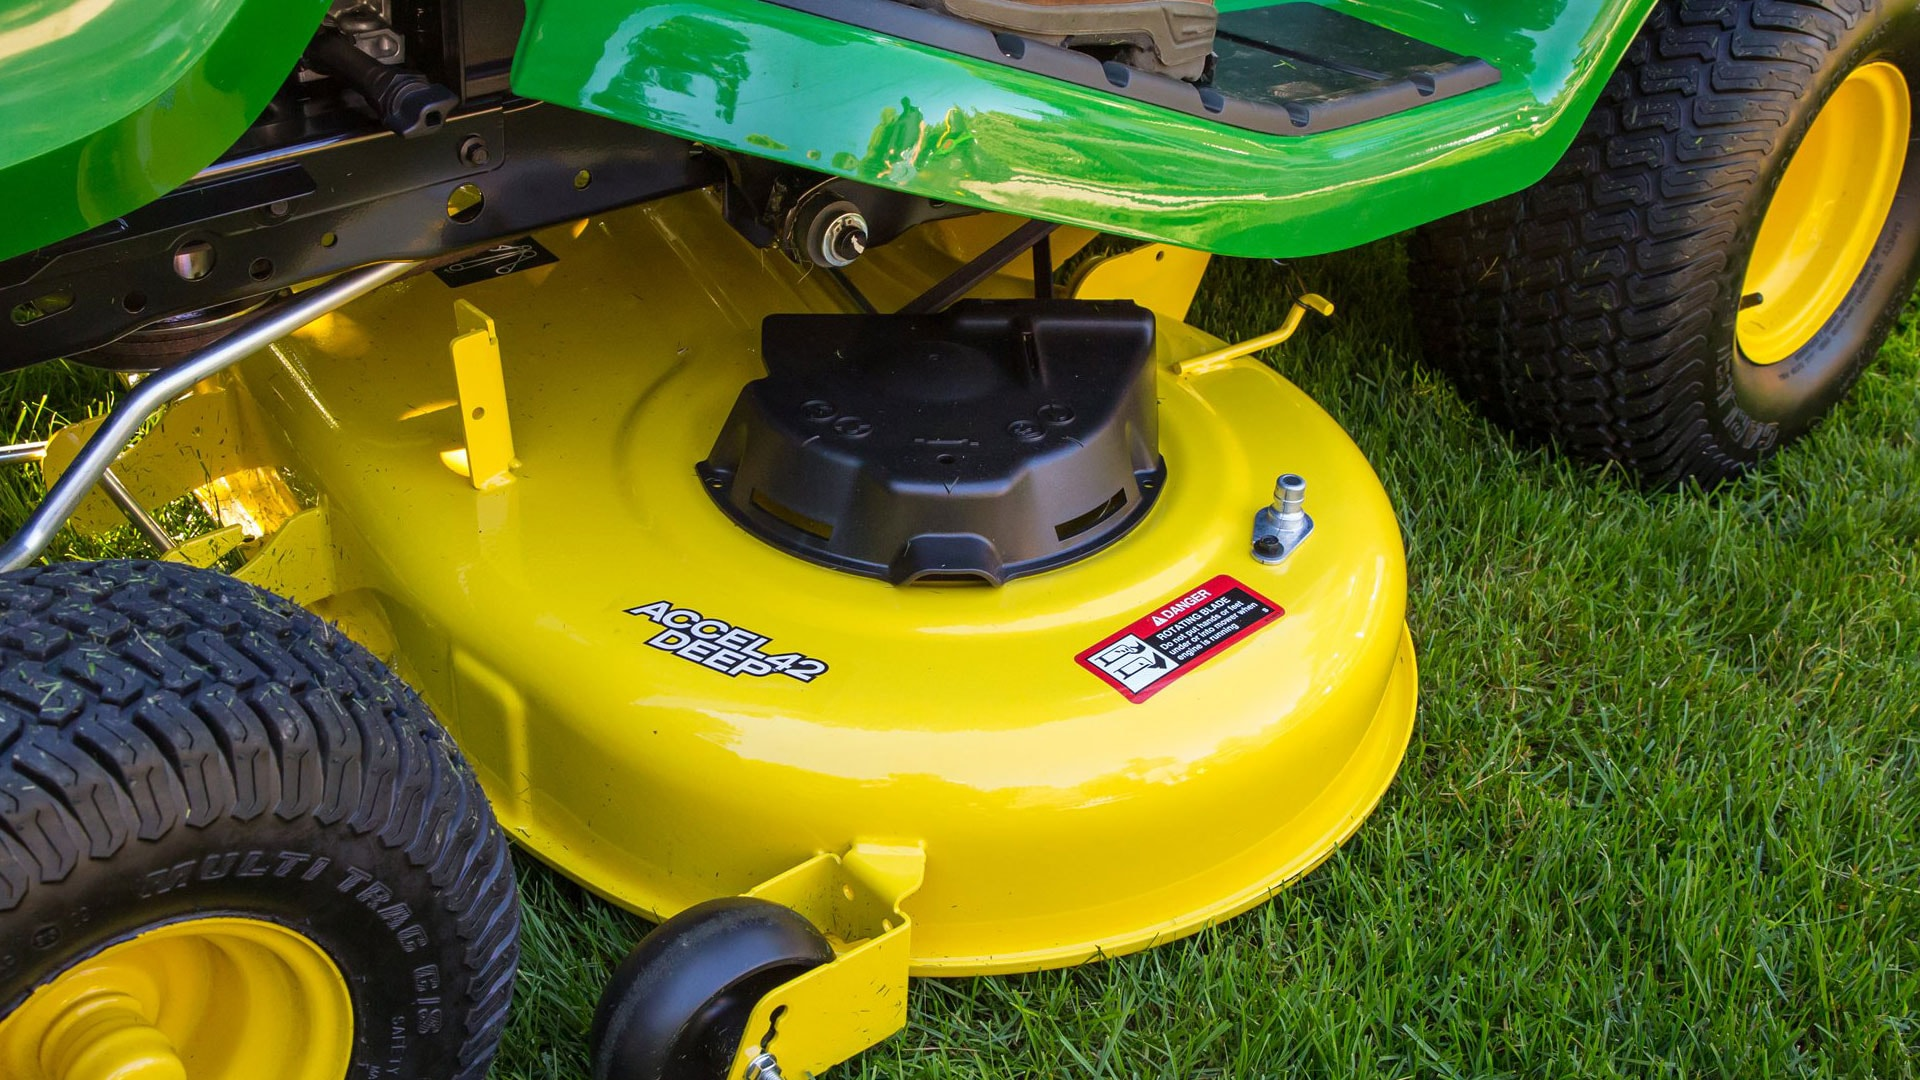 Heavy-duty mower deck for enhanced cutting performance